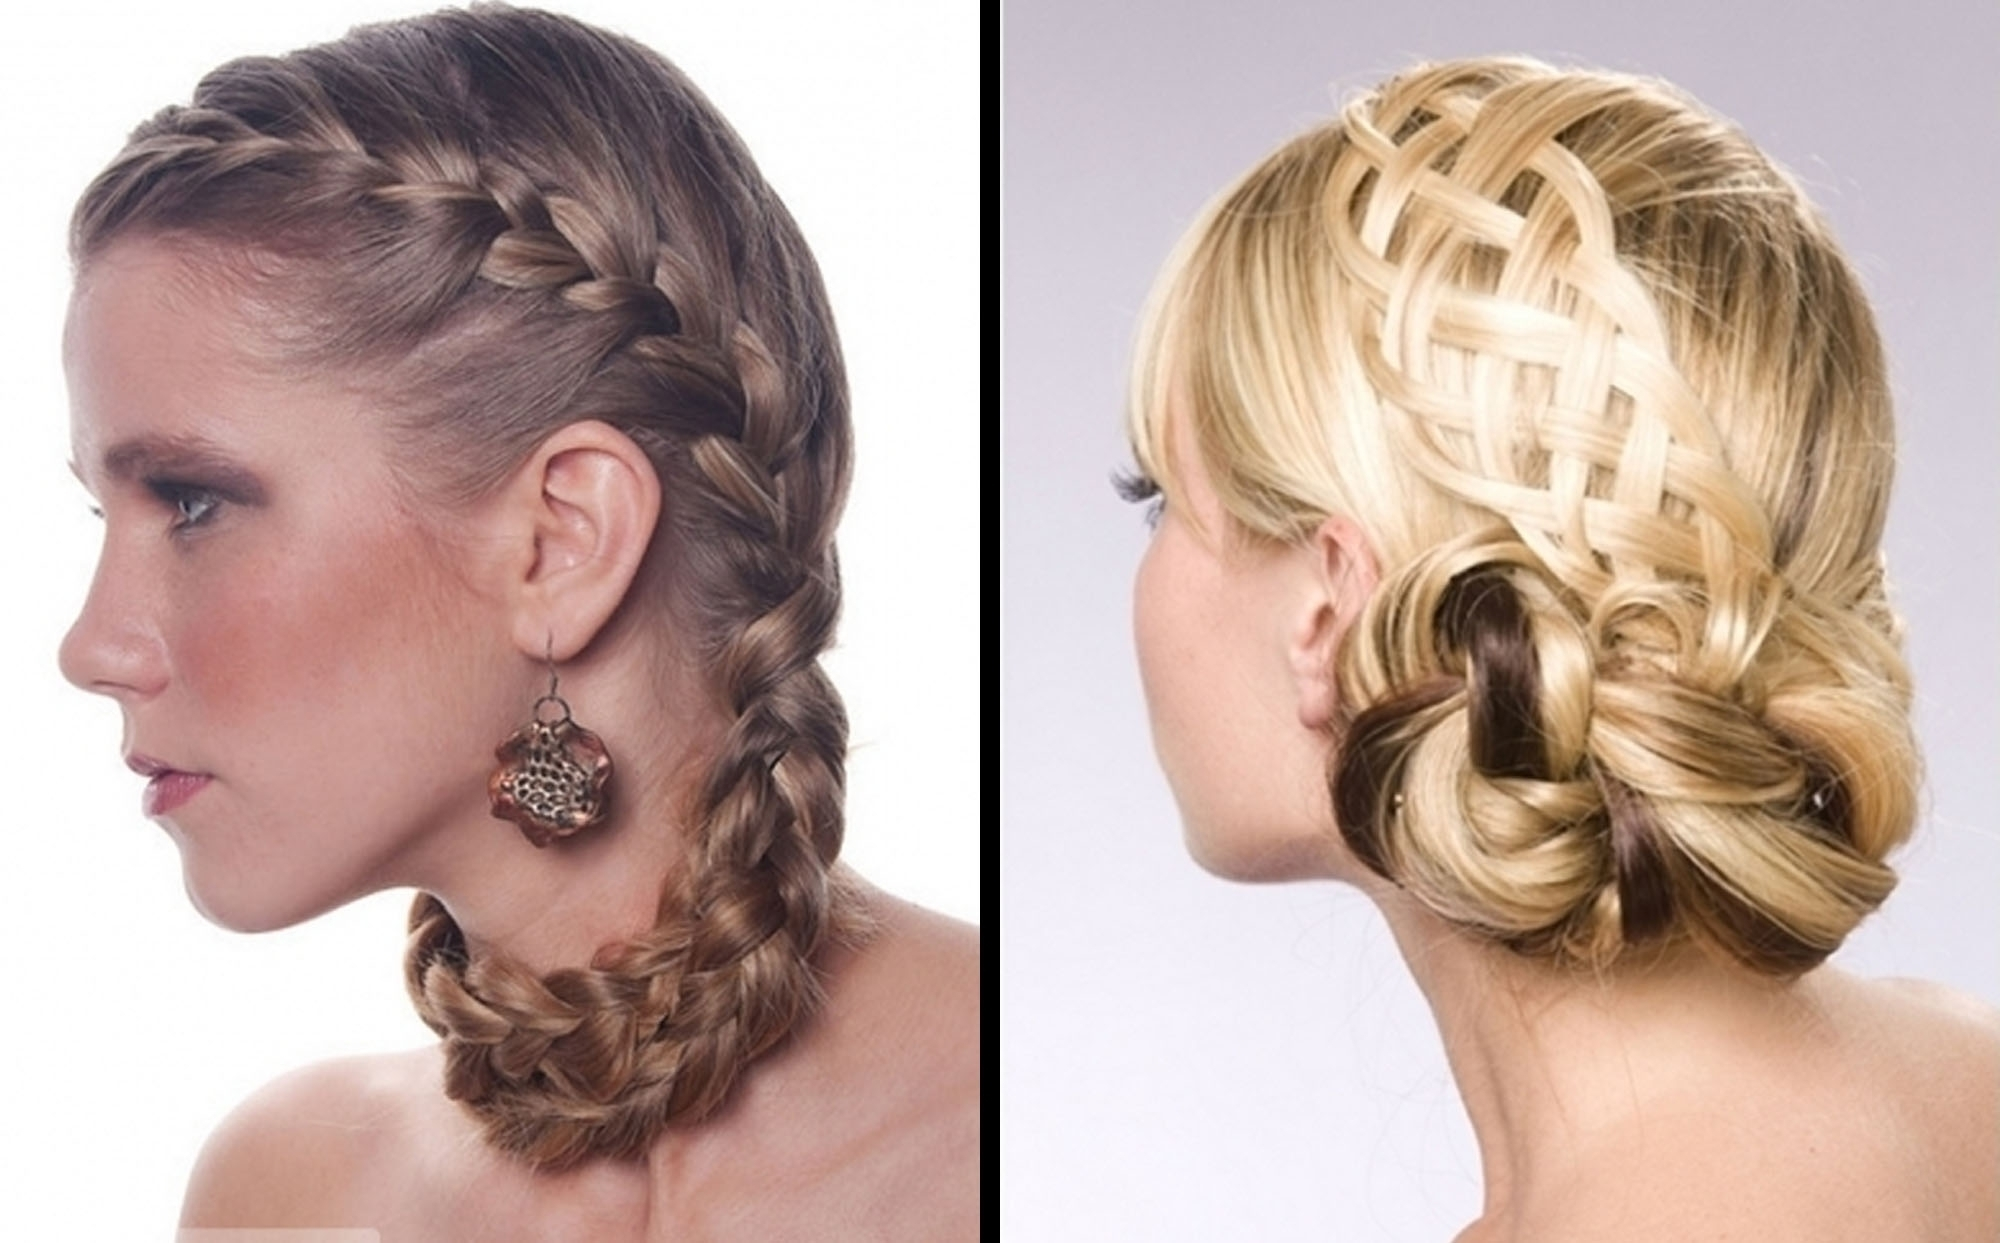 Formal Hairstyles Updo For Long Hair – Women Medium Haircut With Regard To Trendy Updo Hairstyles For Long Hair (View 10 of 15)